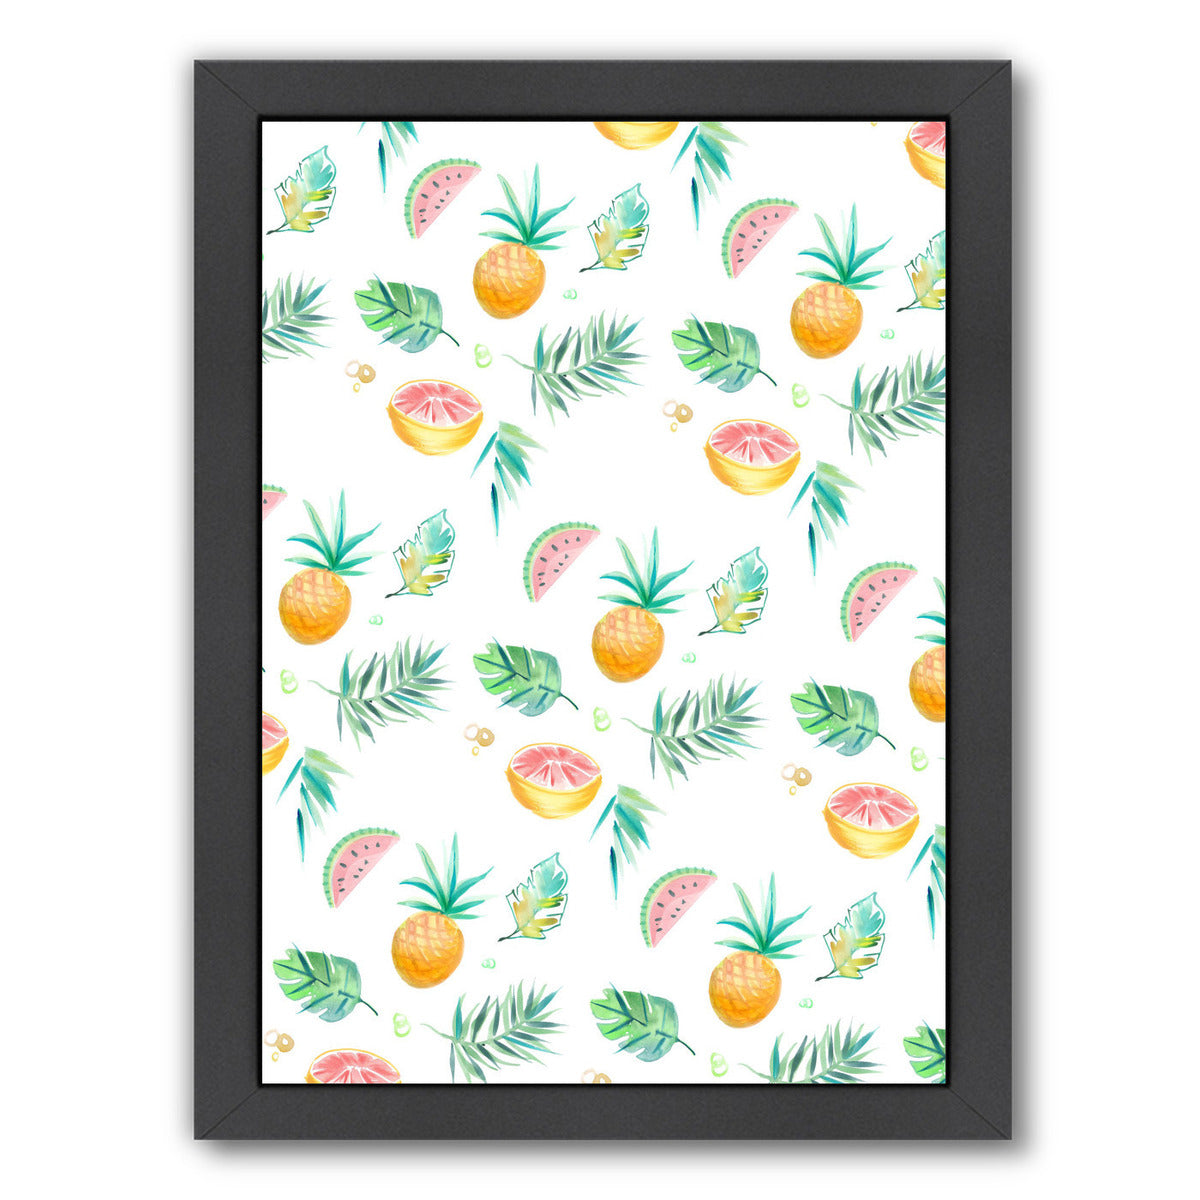 Tropical Pineapple By Victoria Nelson - Black Framed Print - Wall Art - Americanflat